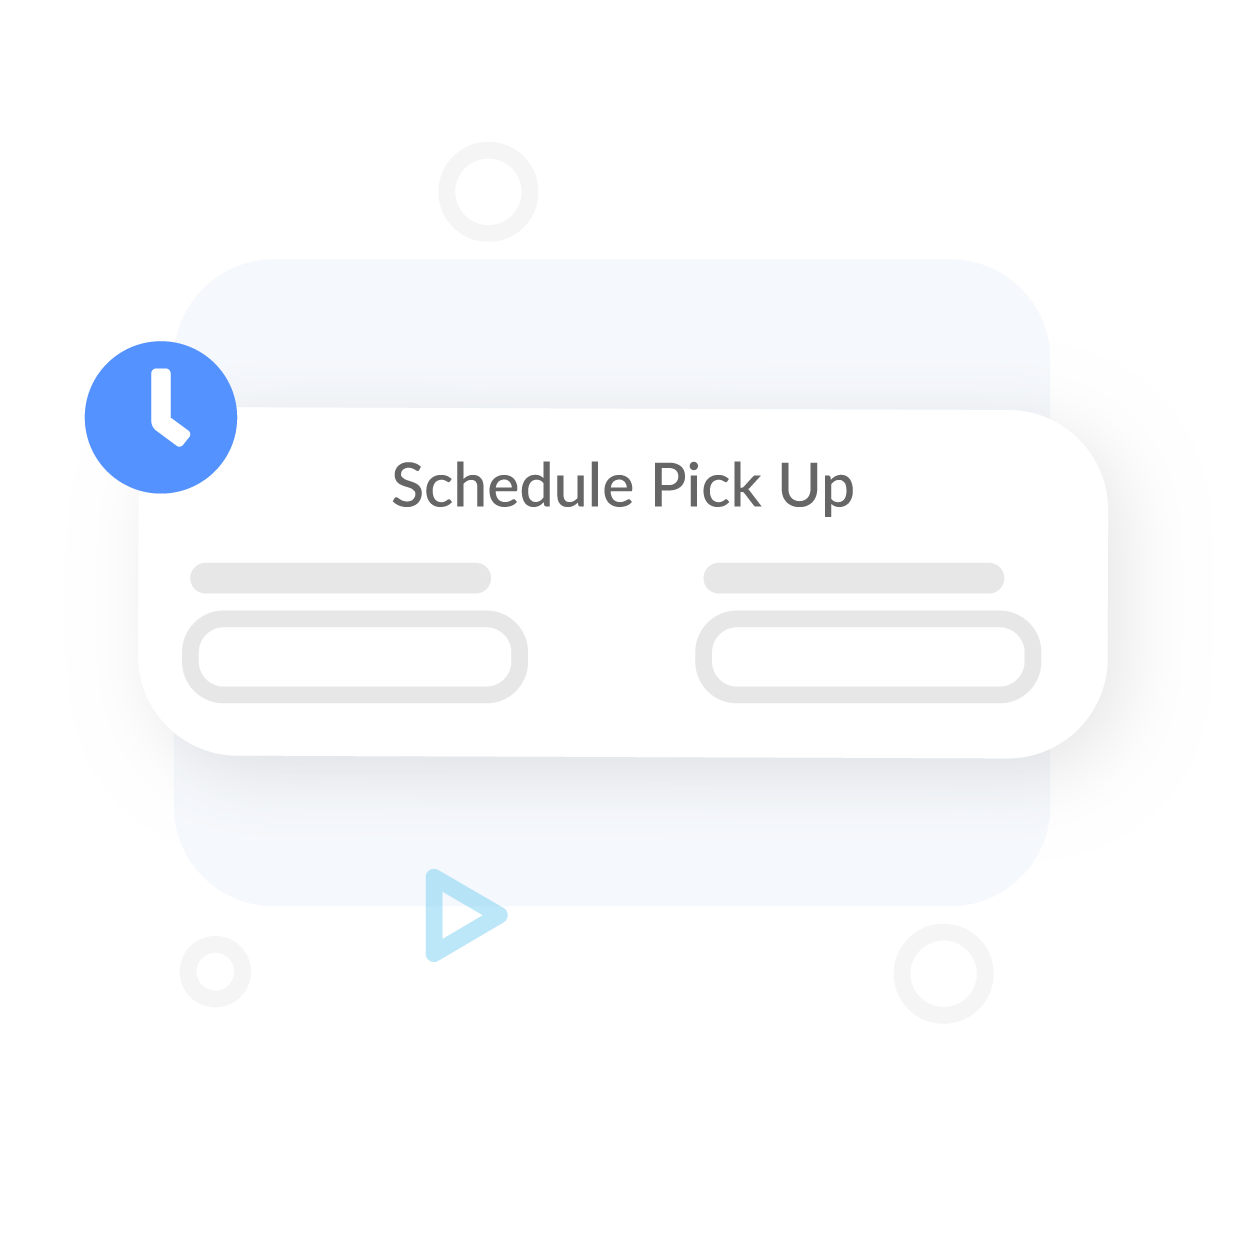 Interface for Scheduling Pickup